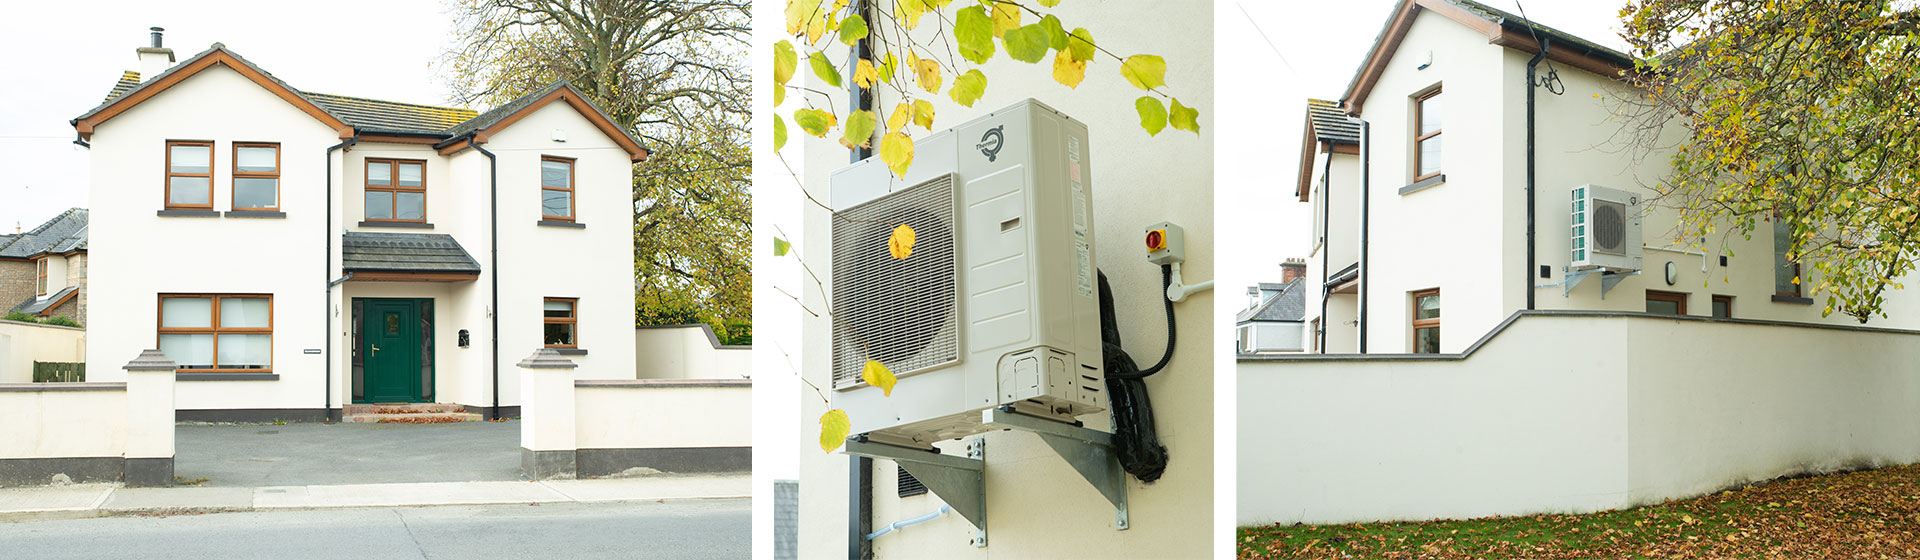 Air-to-Water Heatpump Retrofit with Radiators - Blackrock Co. Louth